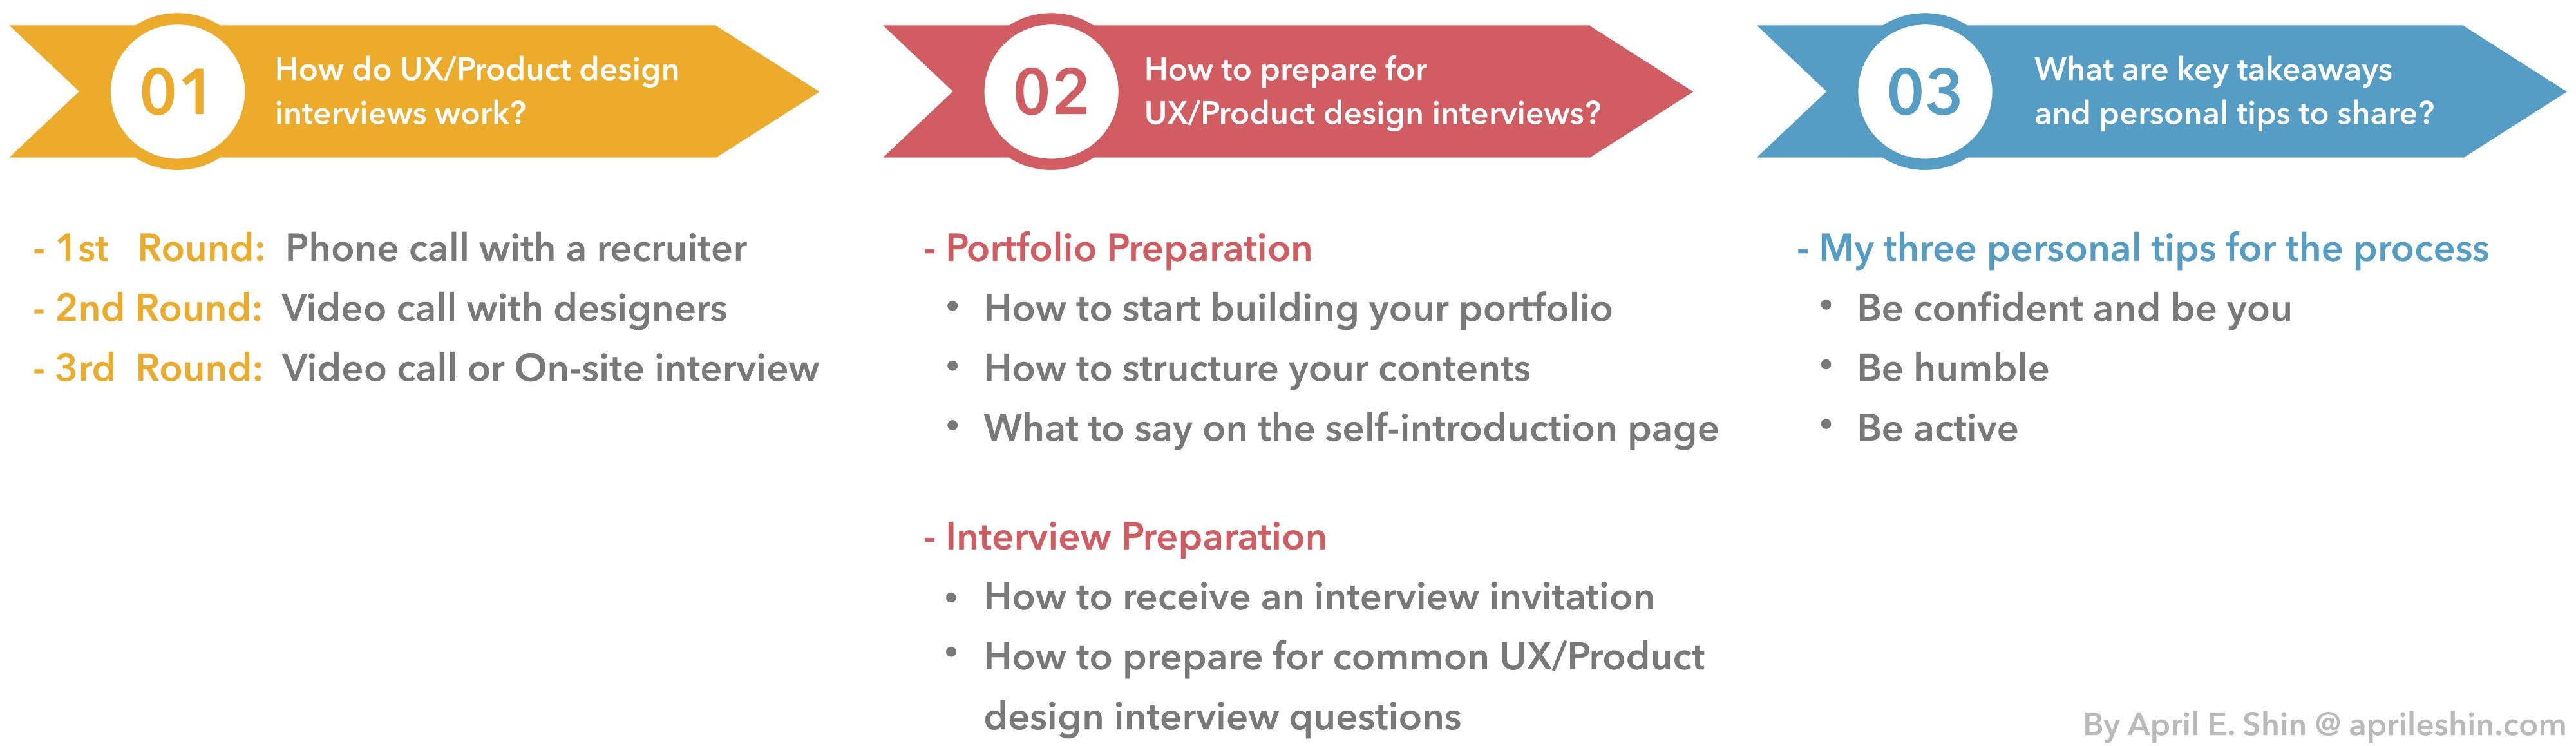 Almost everything you should know about UX/Product design